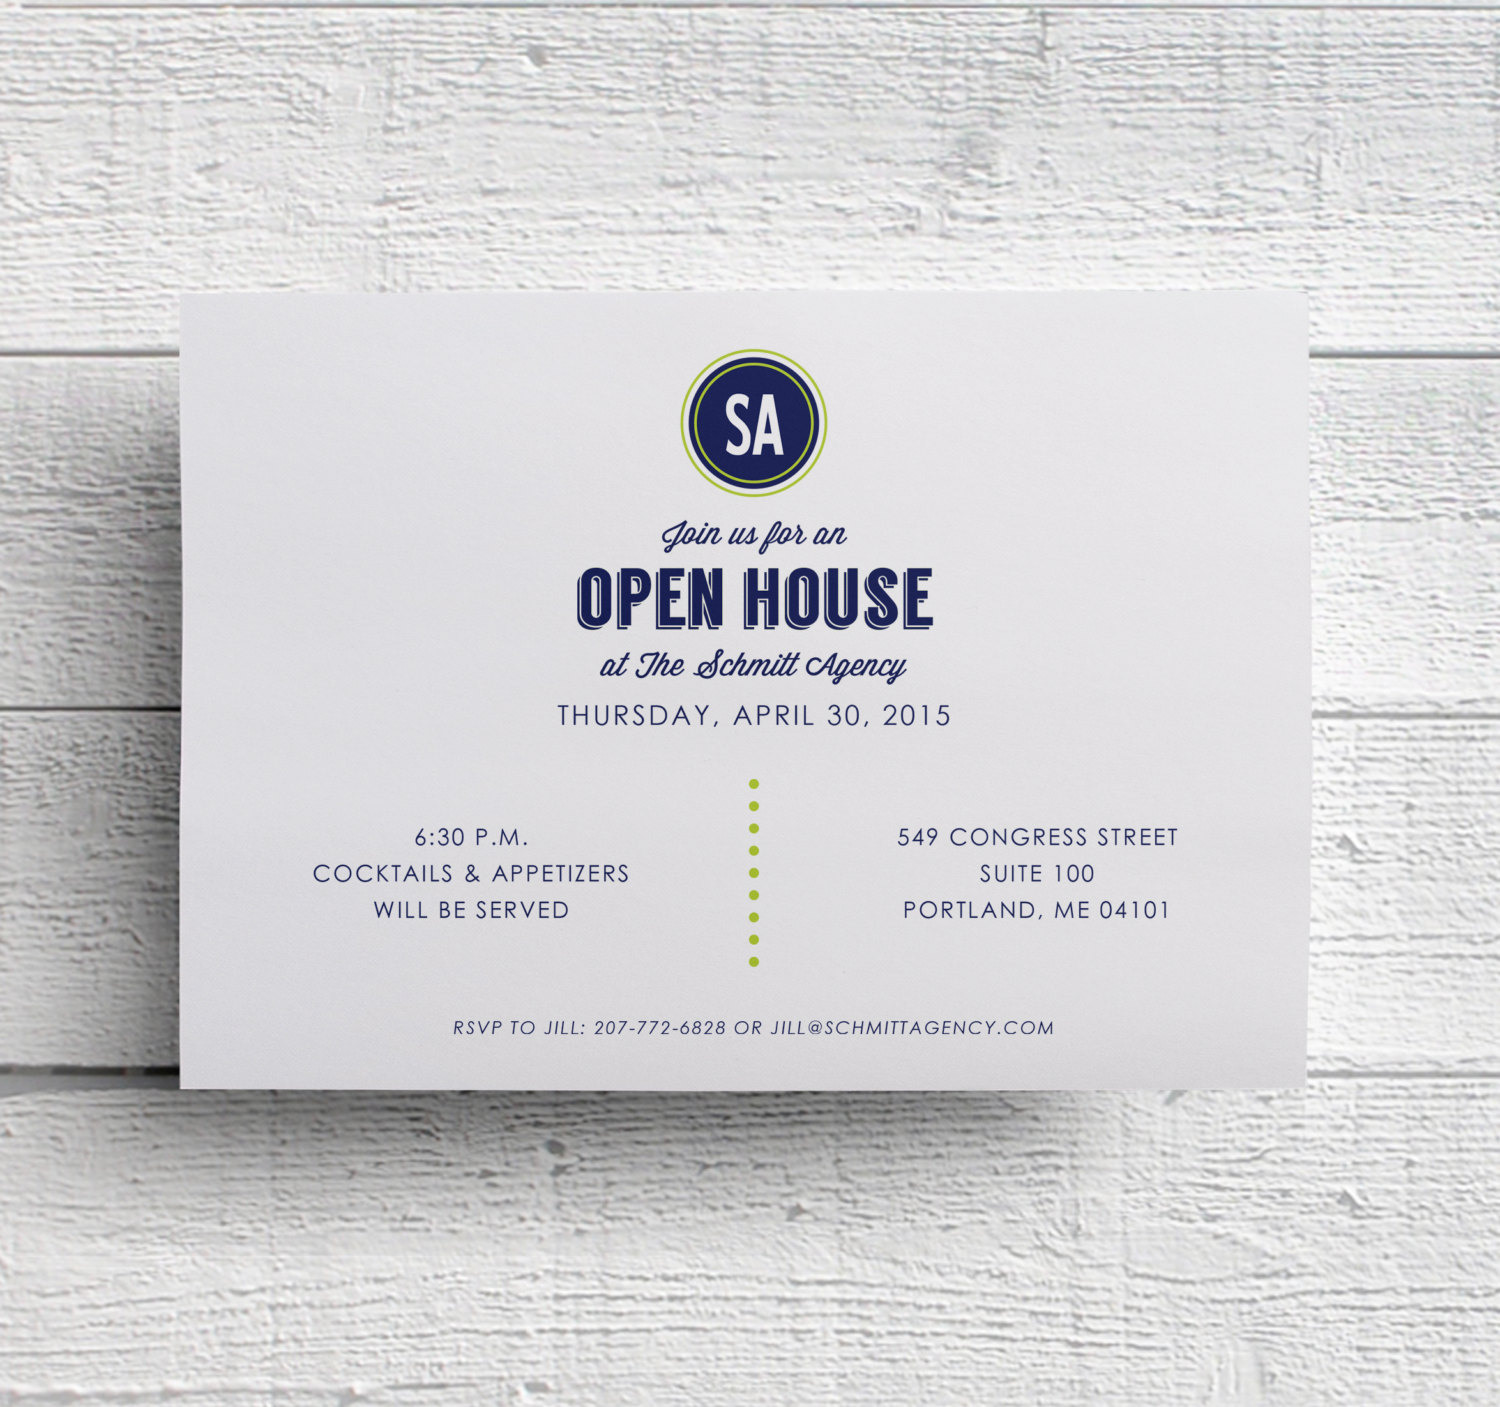 open house business invitation example